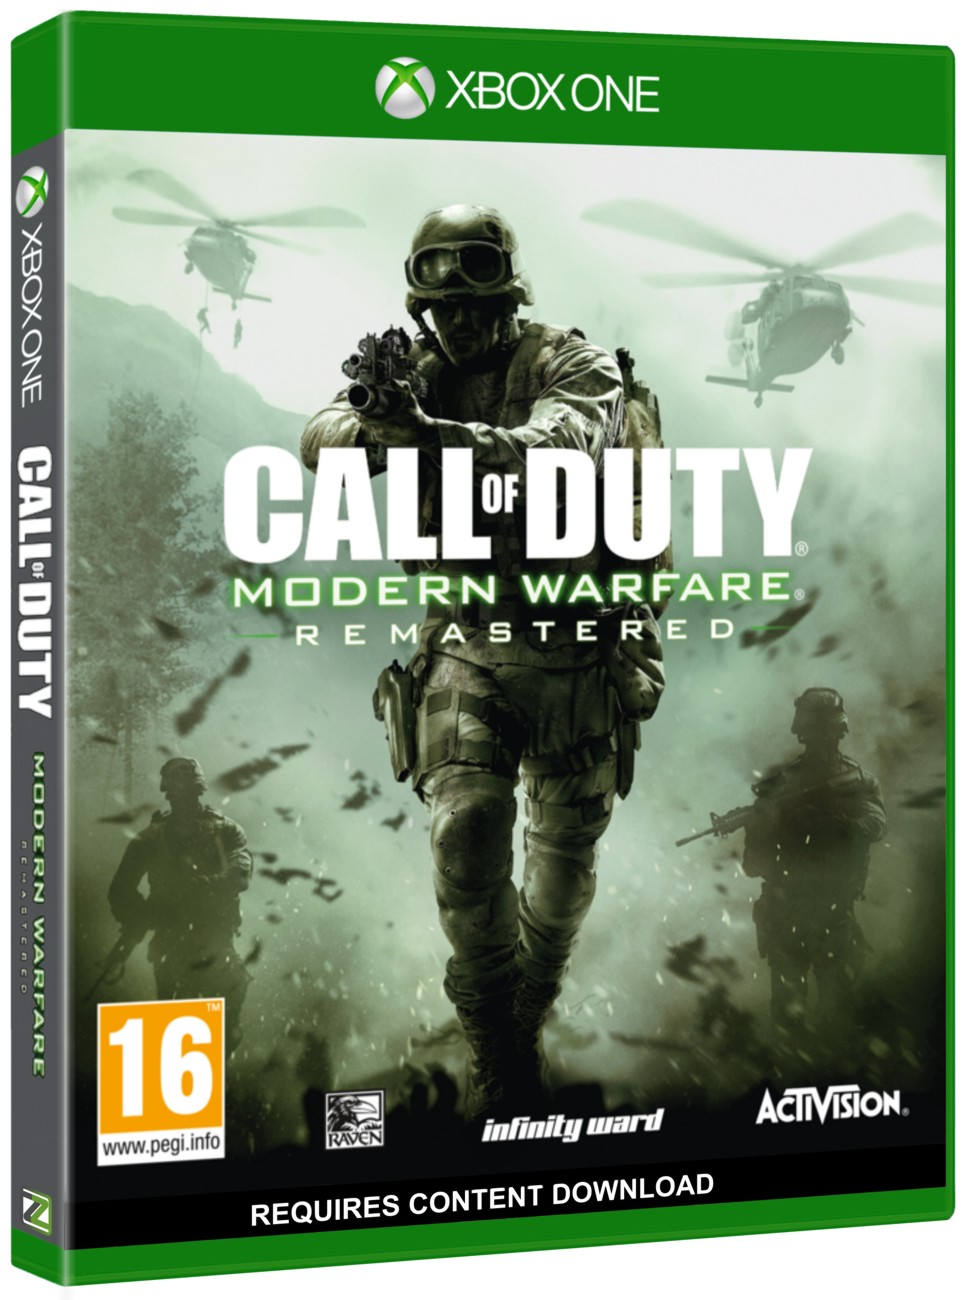 Call of Duty 4: Modern Warfare Remastered - Xone